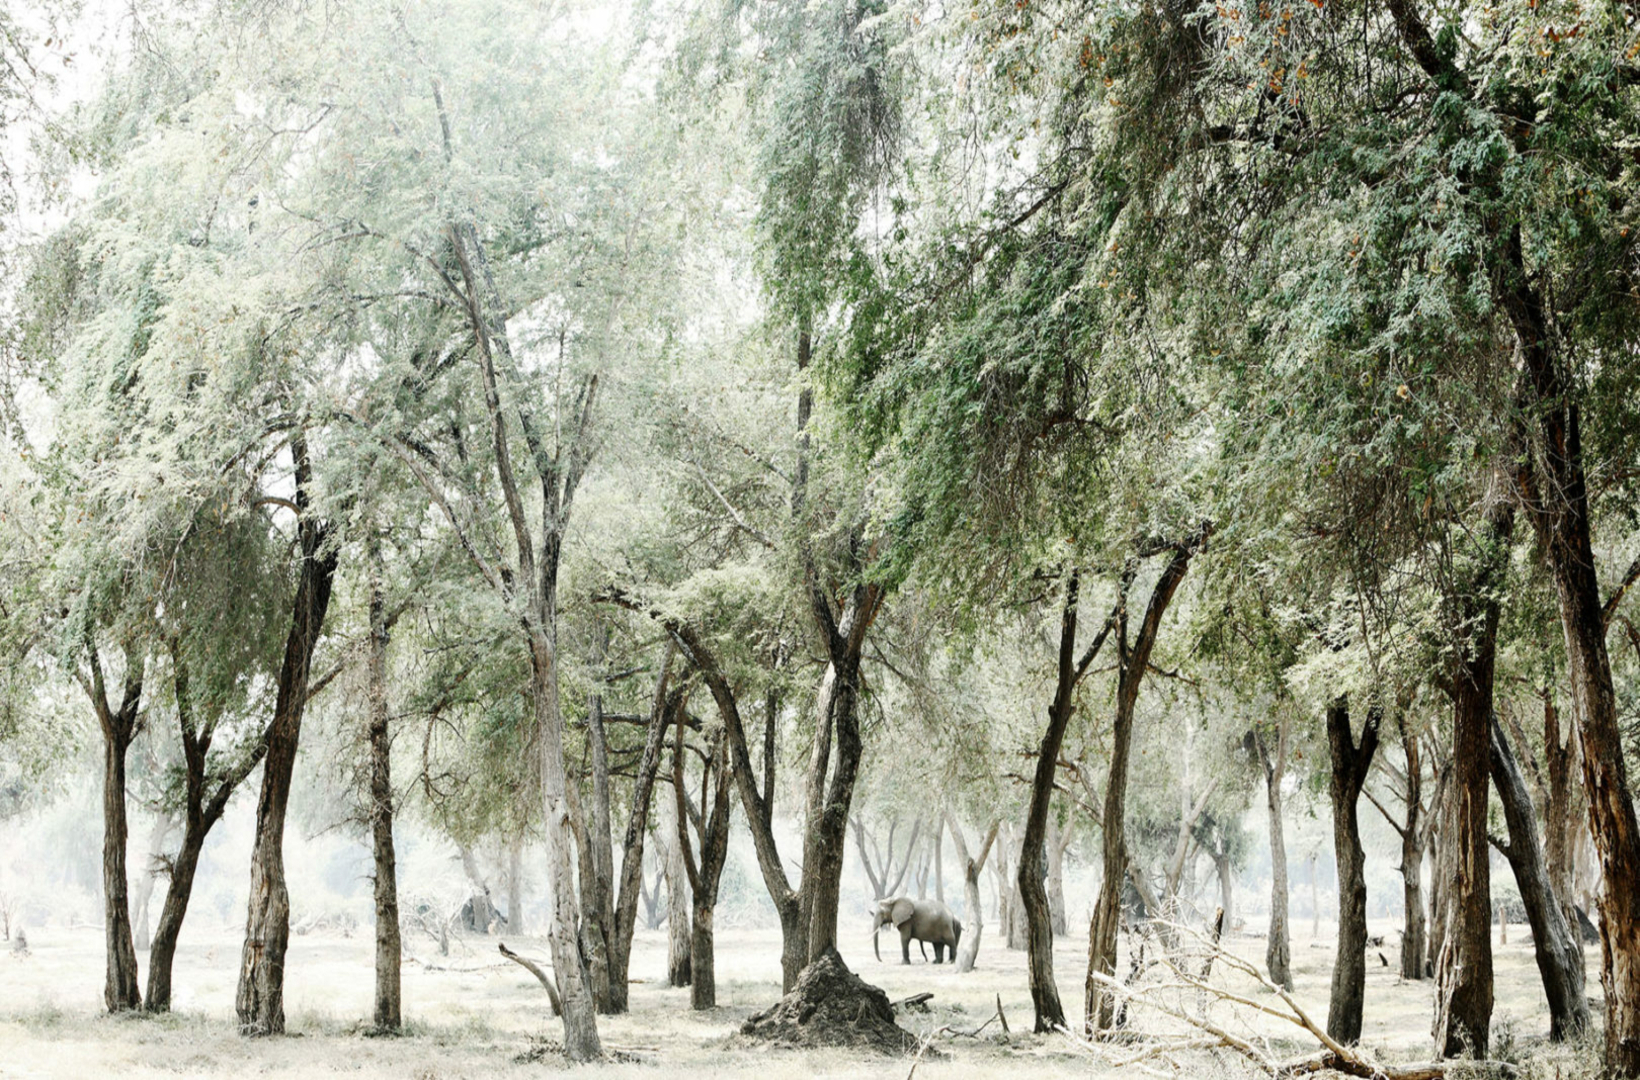 Albida Fibida trees stand sentinel to a distant African elephant gliding through a glade of trees in Mana Pools National Park Zimbabwe